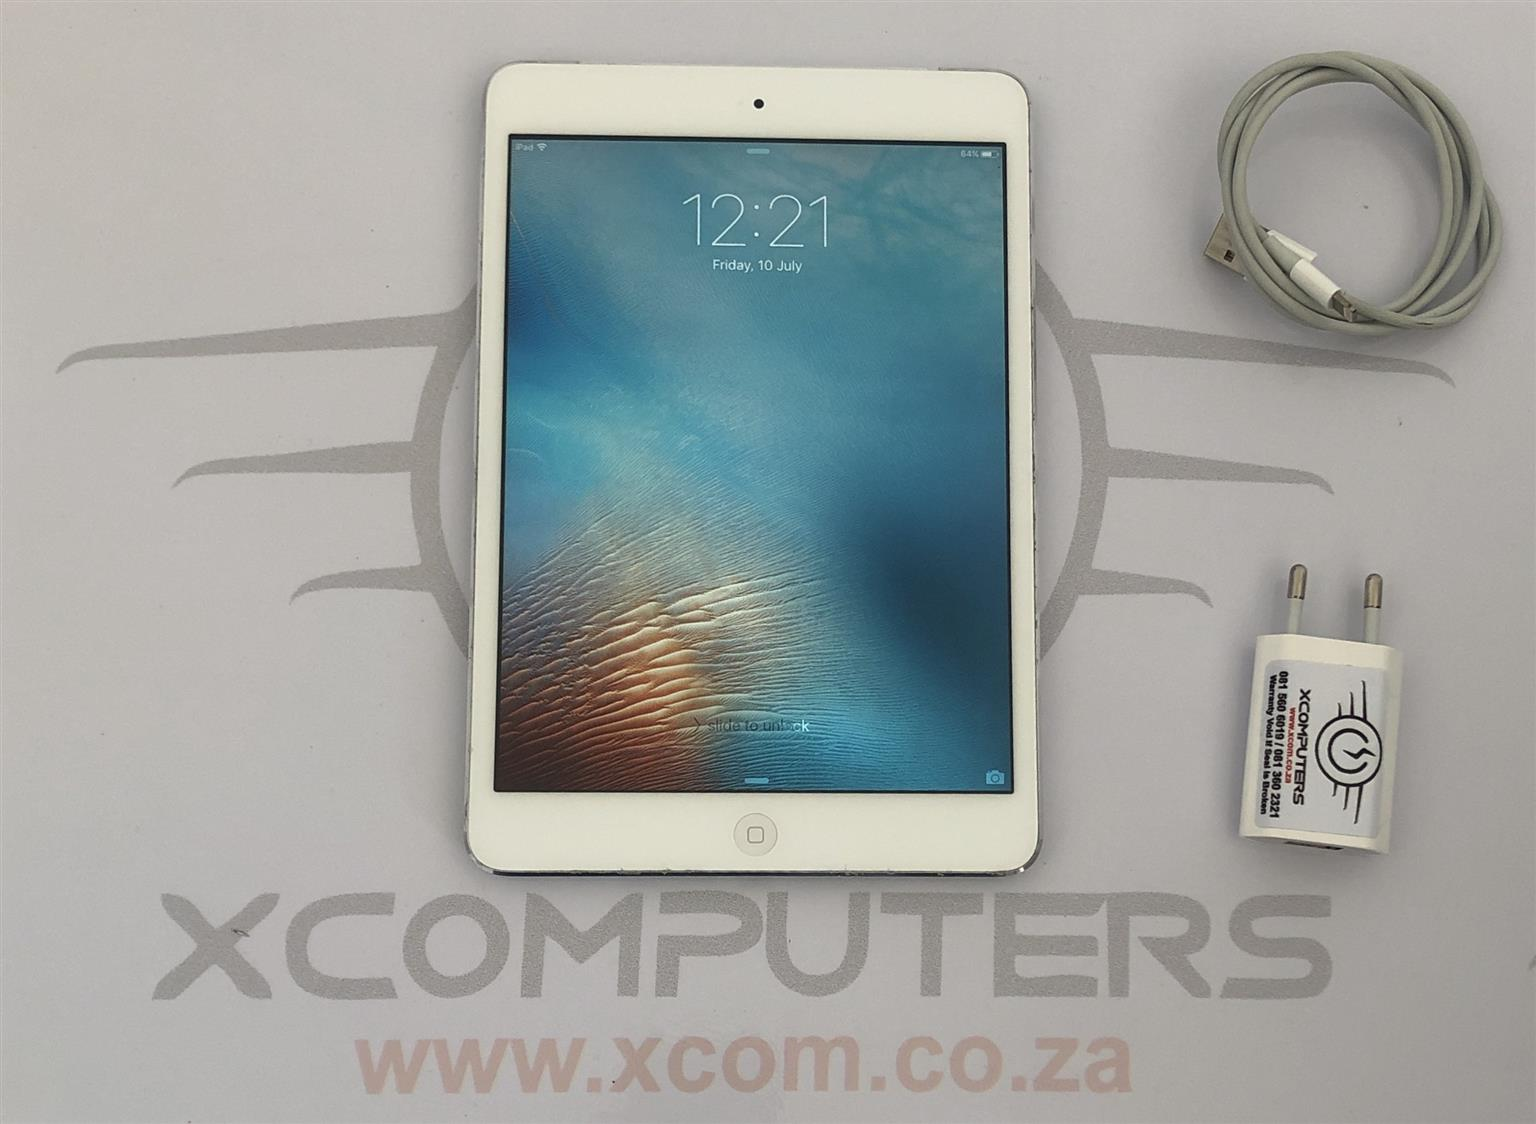 iPad 2 WiFi & 3GB 64GB for Sale R2100